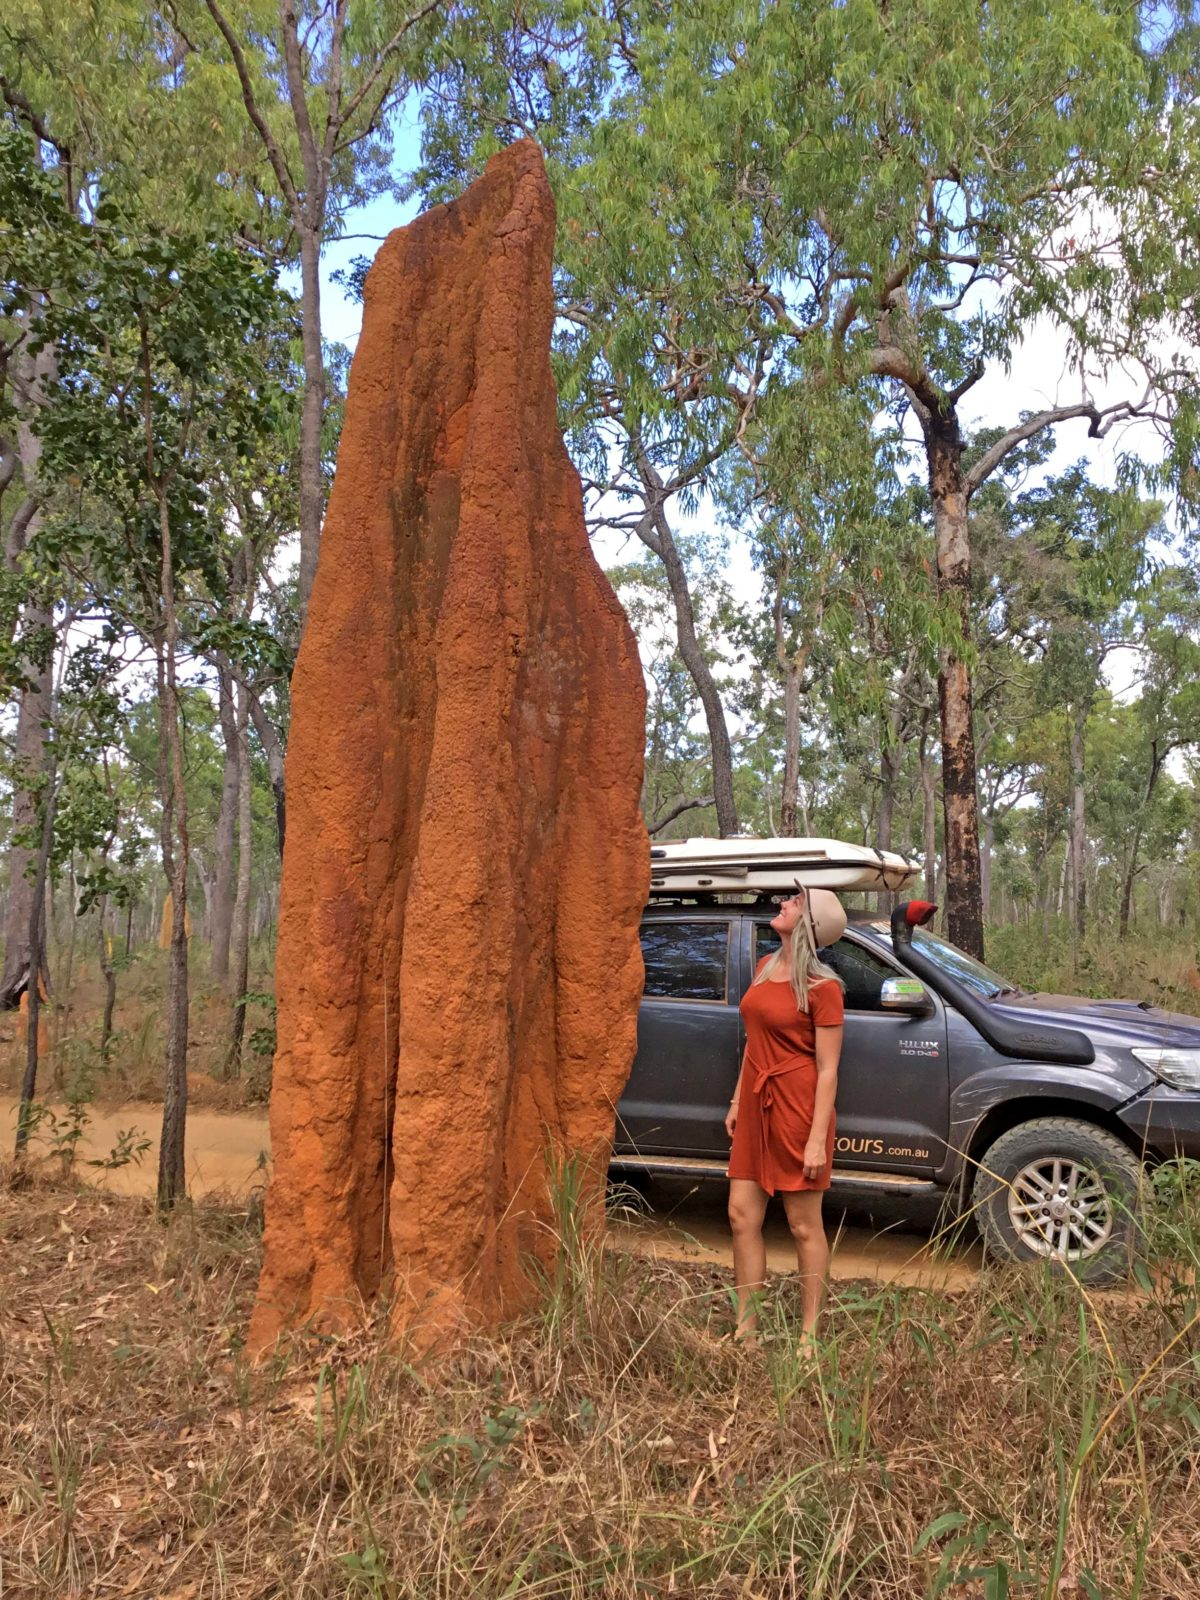 Steph Moon sizing up a termite mound